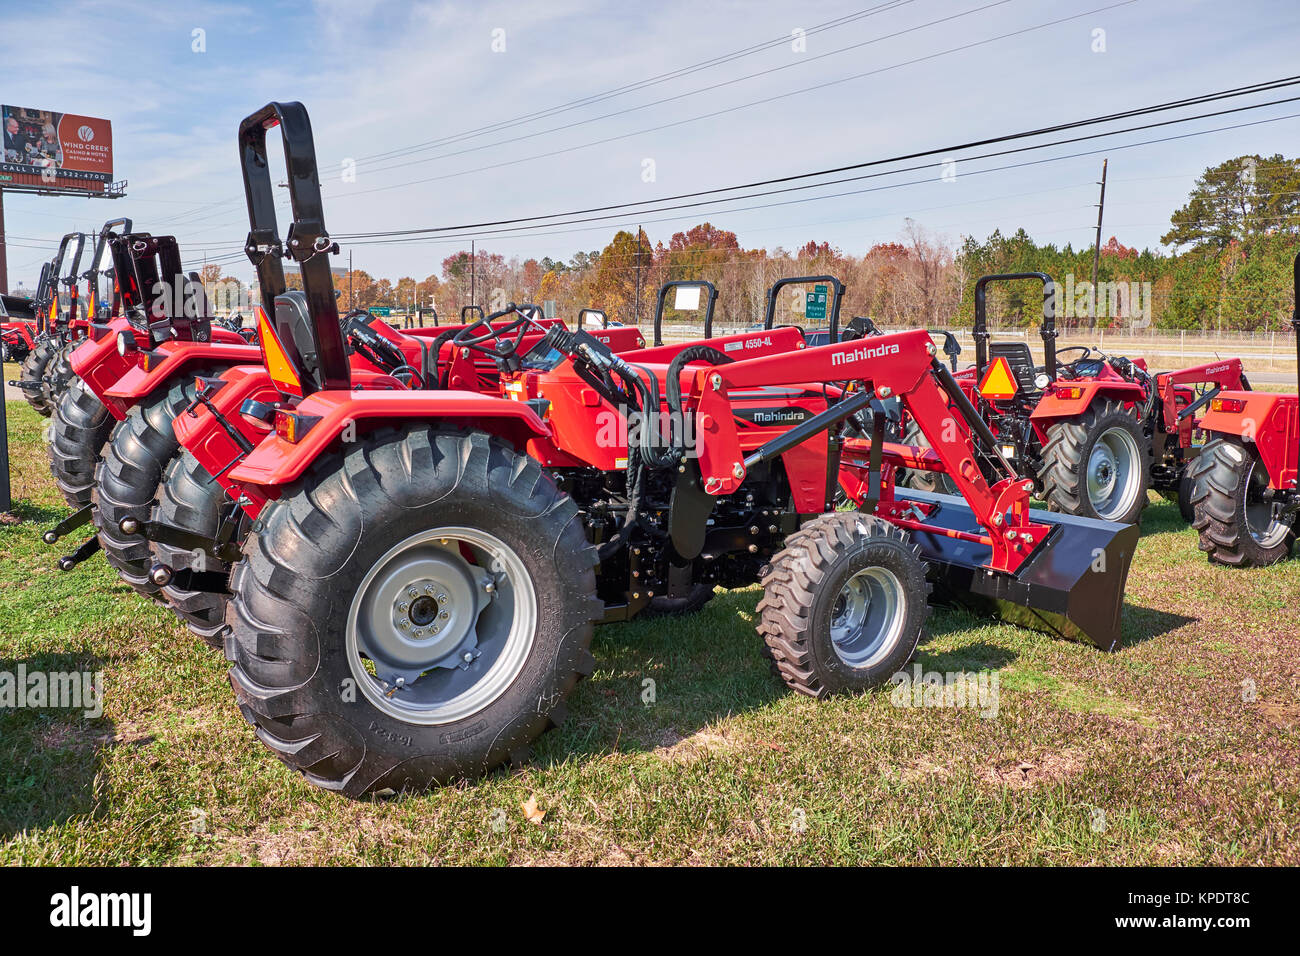 Rows of new Mahindra red tractors and farm equipment for sale at a Mahindra tractor dealership, some with optional - Stock Image